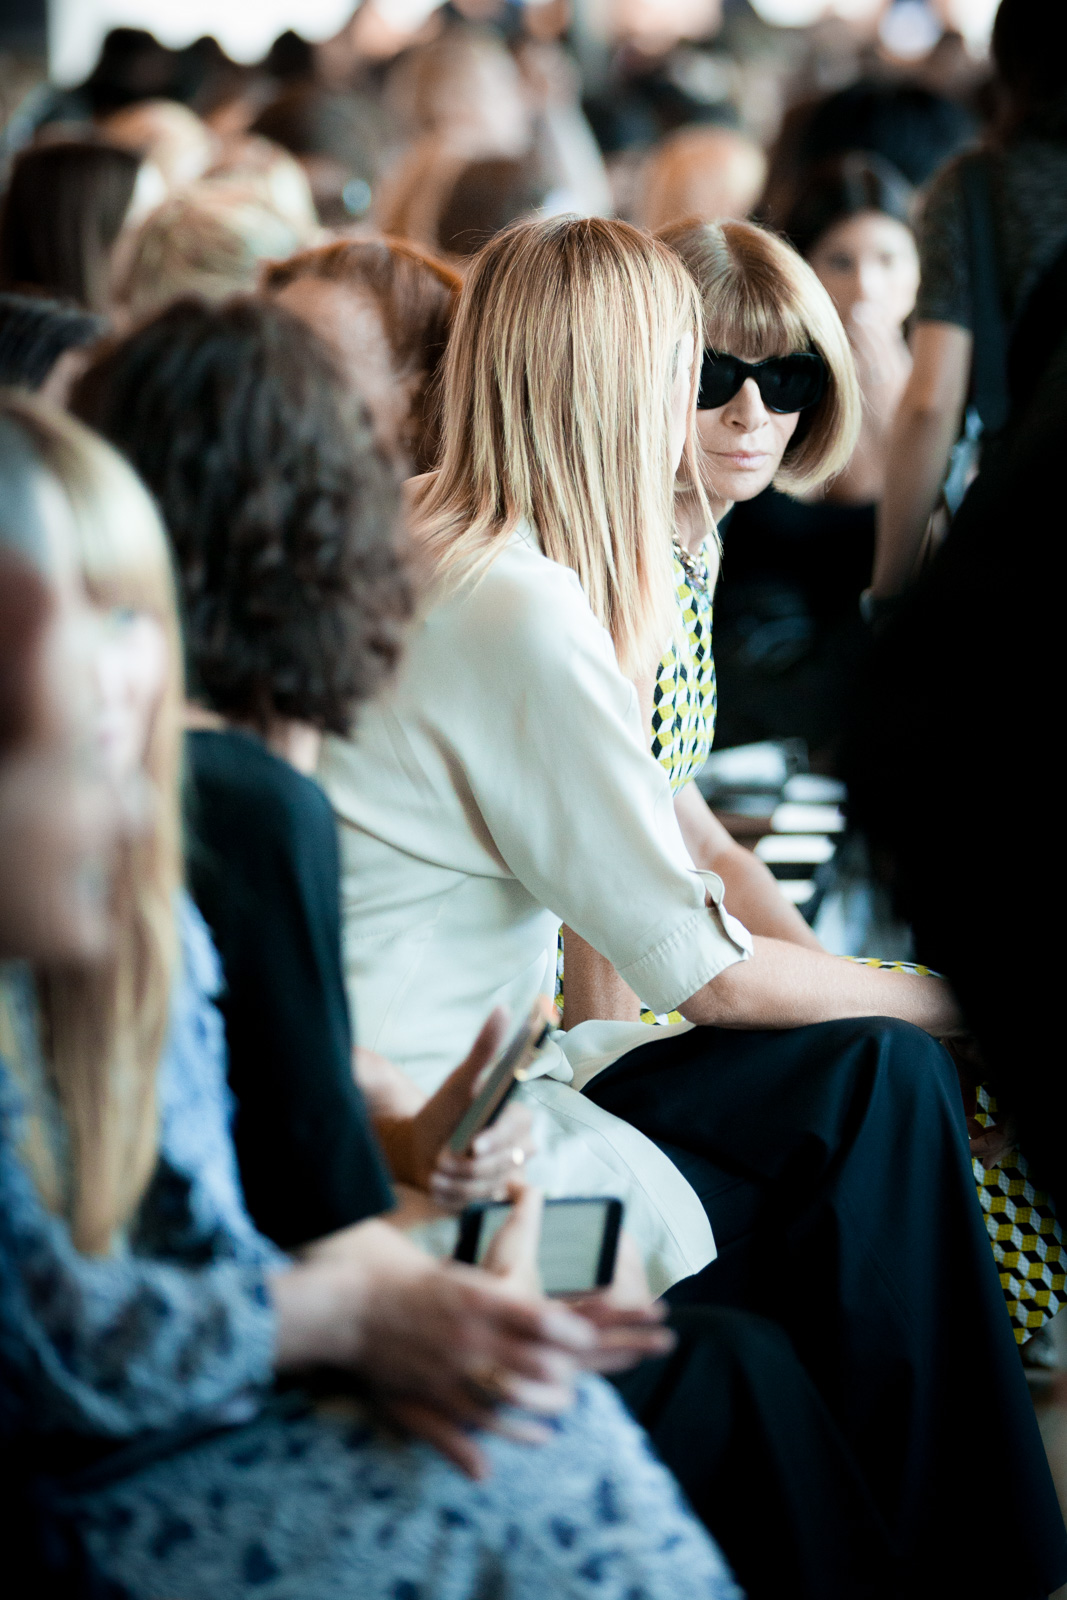 Anna Wintour at the Calvin Klein Spring 2016 Runway Show All Access during New York Fashion Week at Spring Studios on September 17, 2015 in New York City, USA.